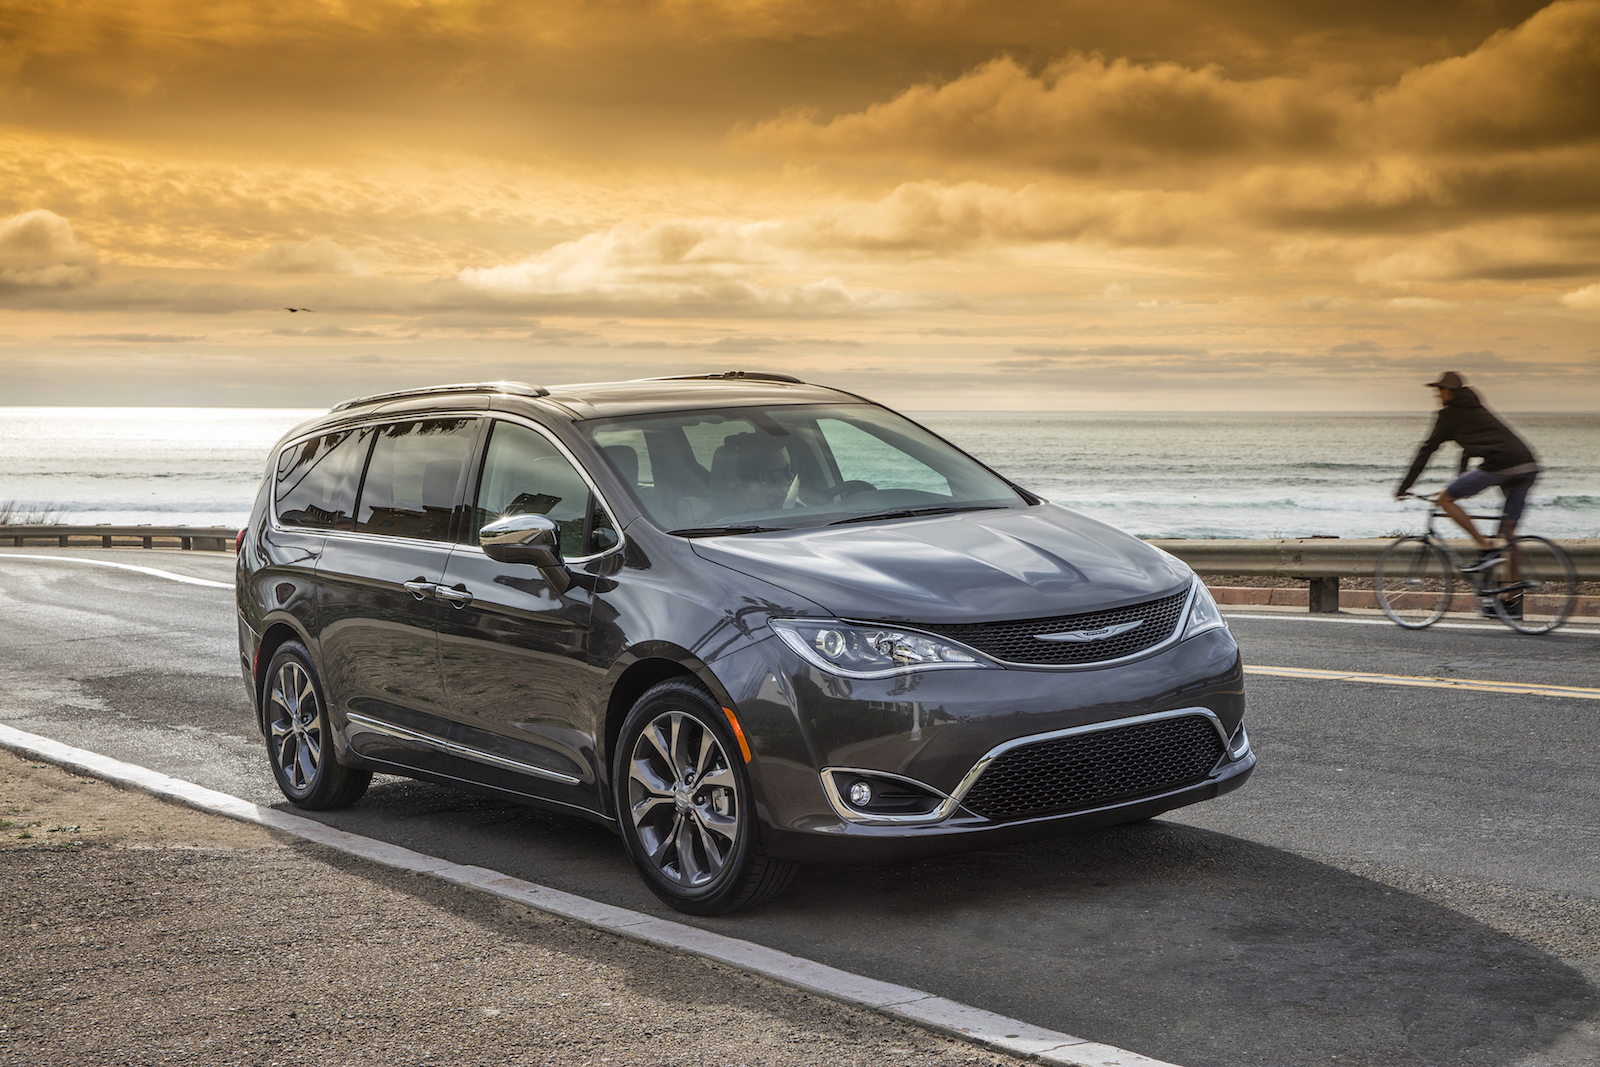 2017 Chrysler Pacifica Styling Review - The Car Connection